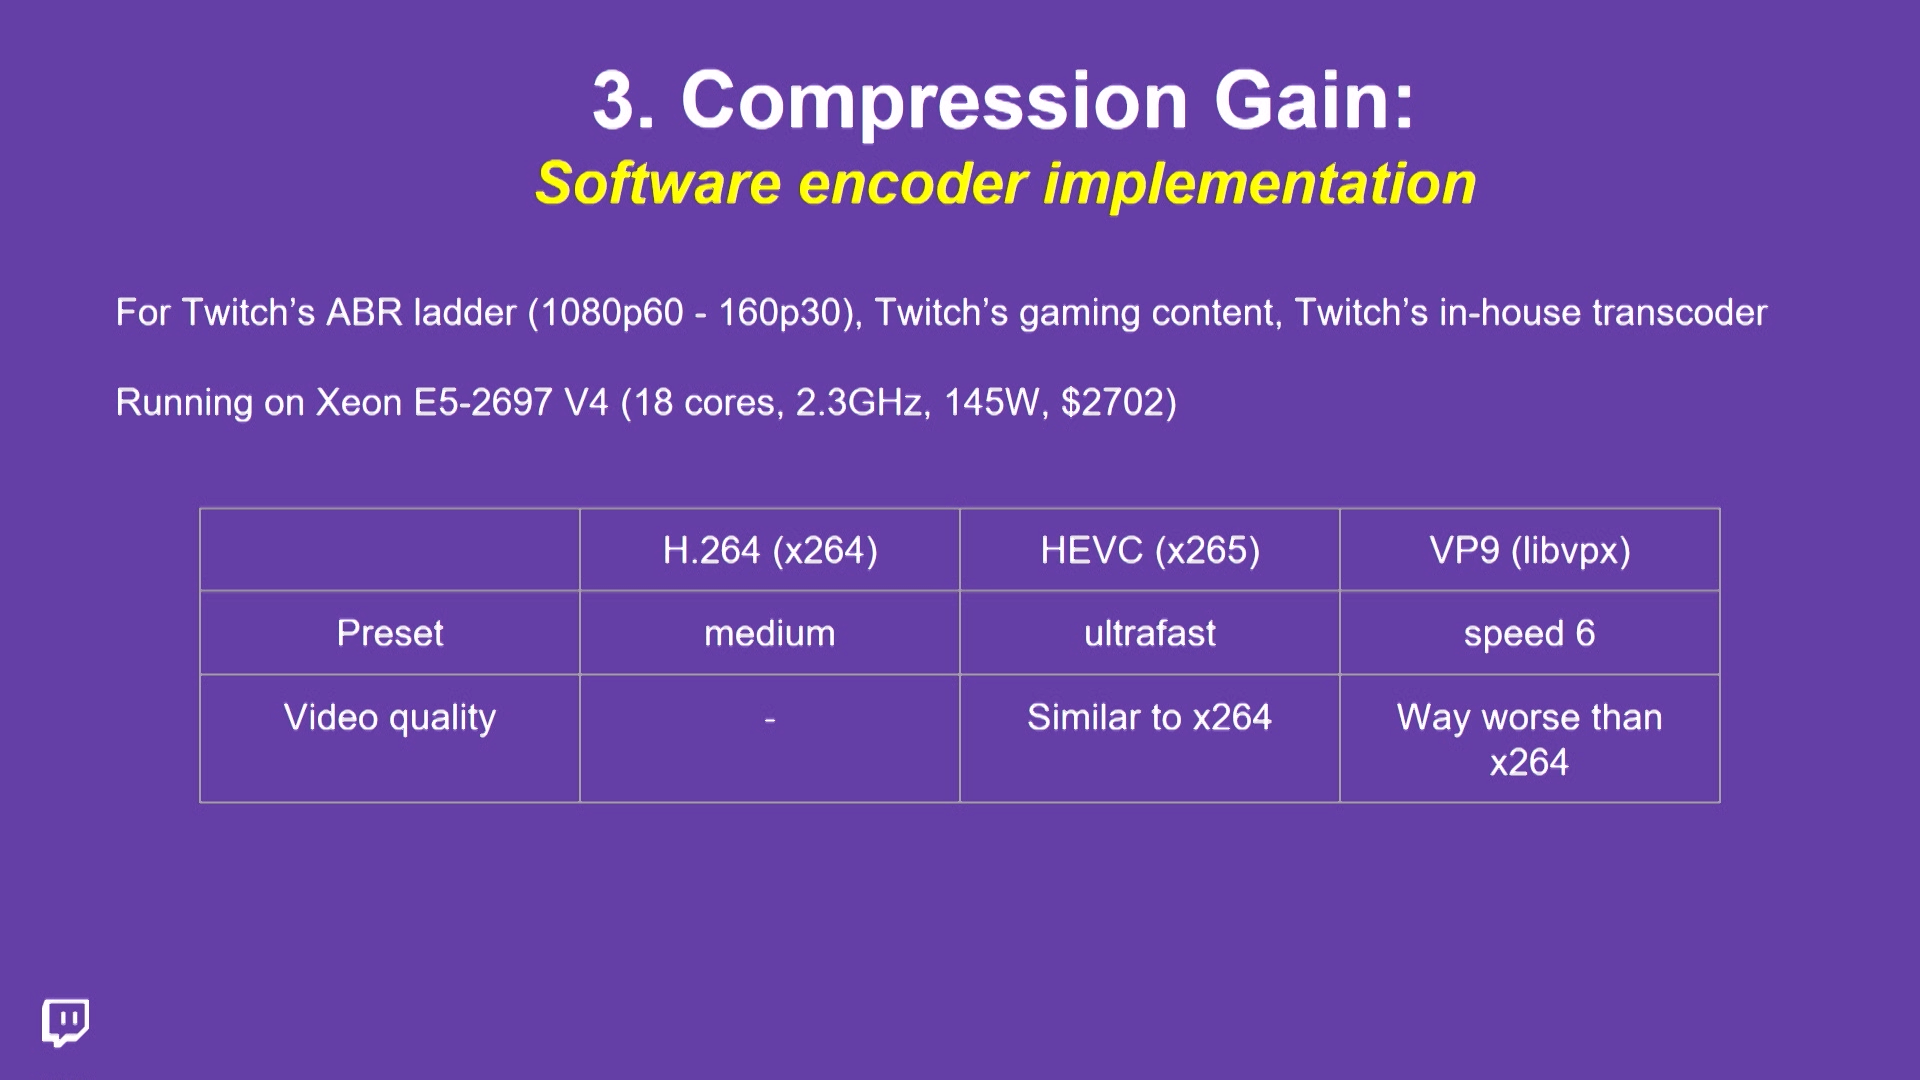 H.264 VP9 HEVC compression gain